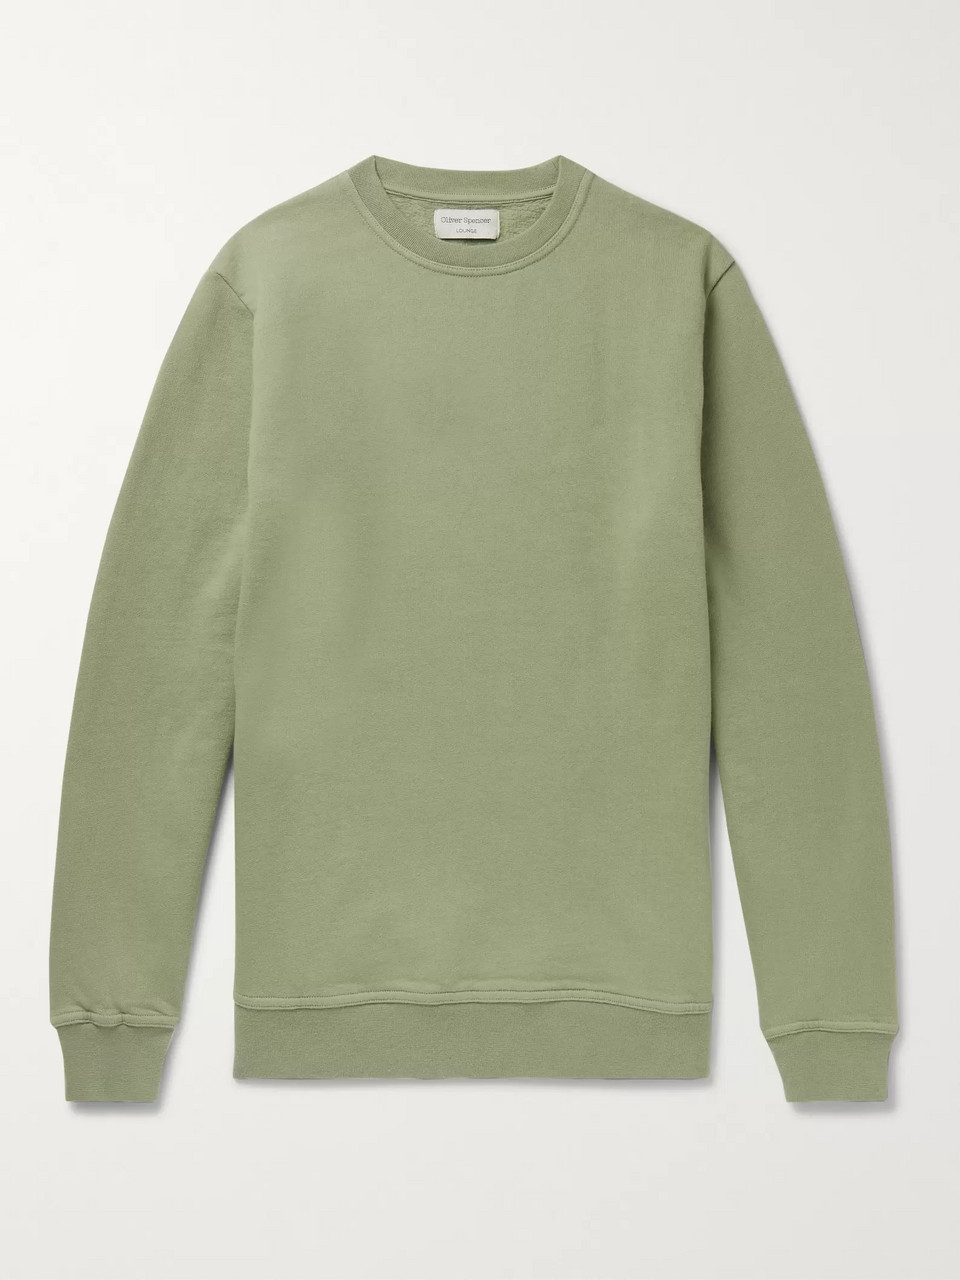 Oliver Spencer Loungewear Harris Fleece-Back Brushed Cotton-Jersey Sweatshirt